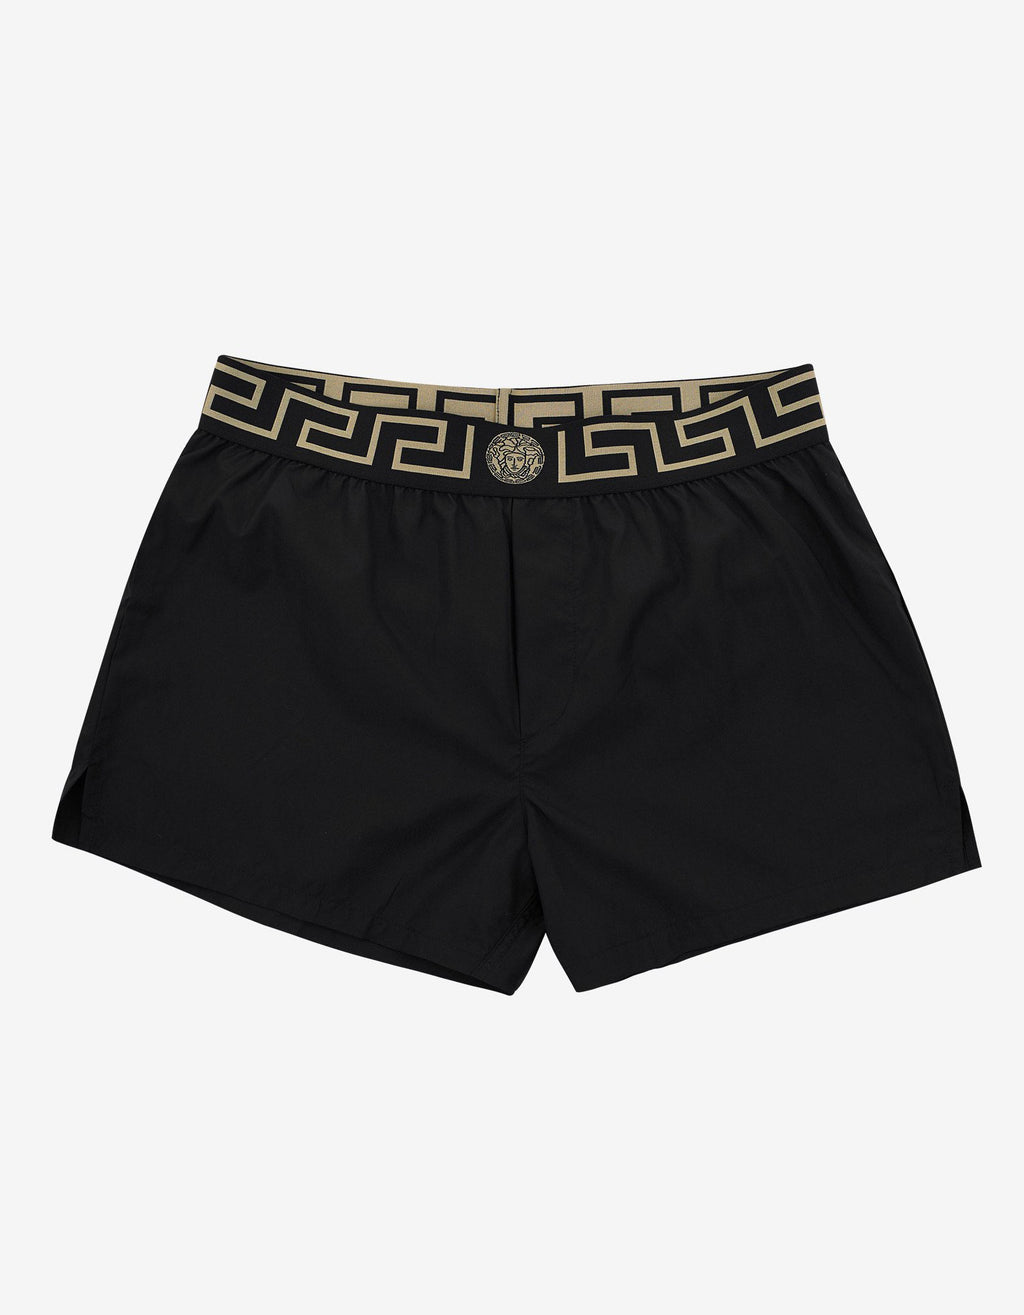 Black Greek Pattern Swim Shorts